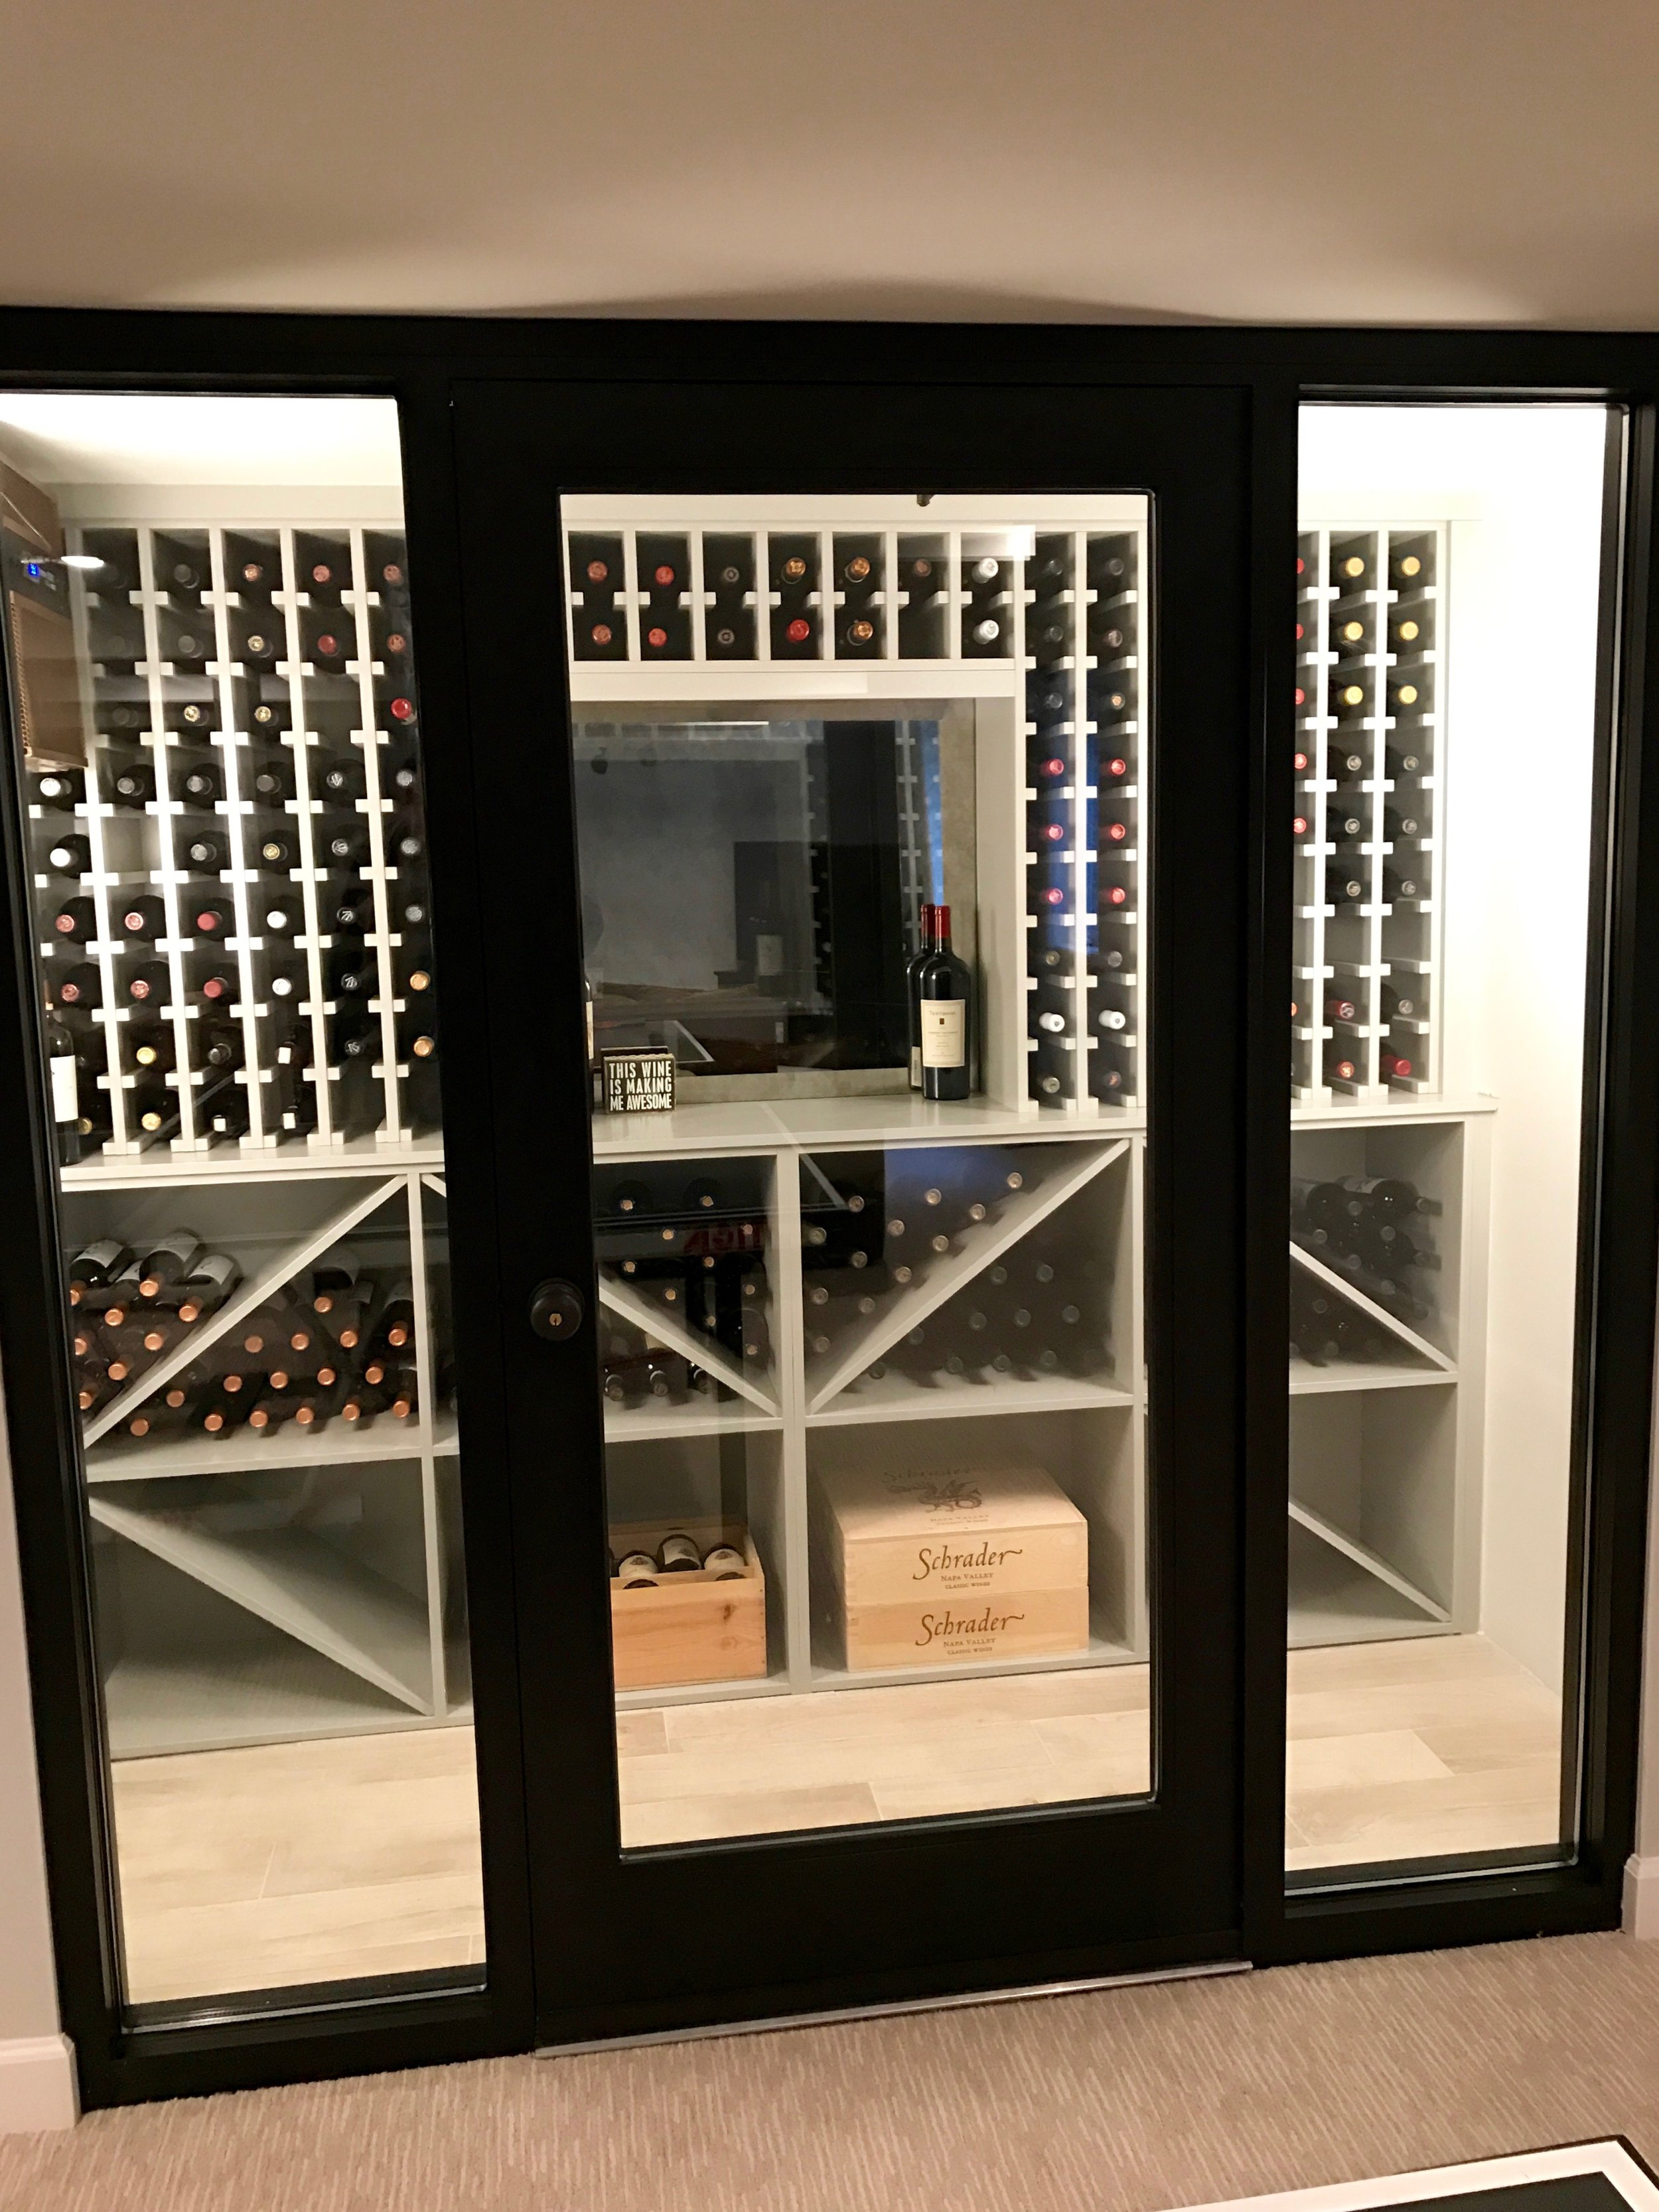 This wine cellar was created to hold hundreds of bottles in different formats behind insulated glass and a special door with a thermal break in the frame to maintain 55 degrees fahrenheit and controlled humidity. T he walls and ceiling are fully insulated to help the cooling unit operate efficiently. The custom wine storage unit is a modernized take on the traditional dark wood cabinetry.